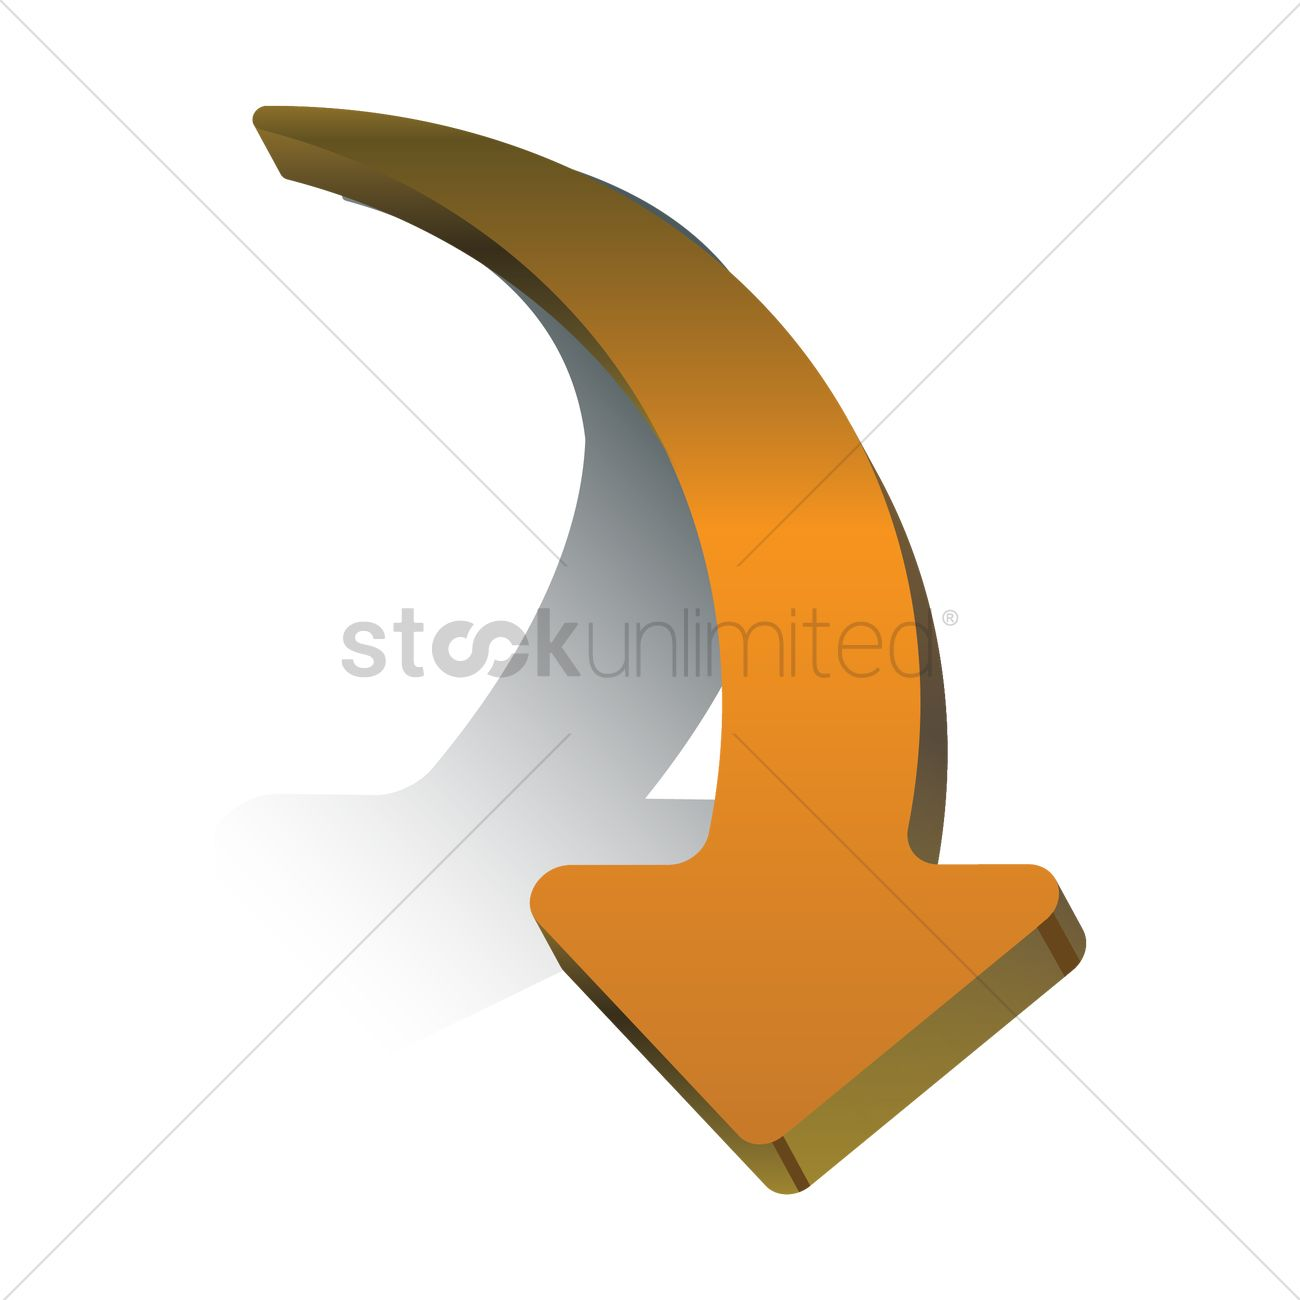 Curved right arrow sign clipart. Vector image stockunlimited graphic